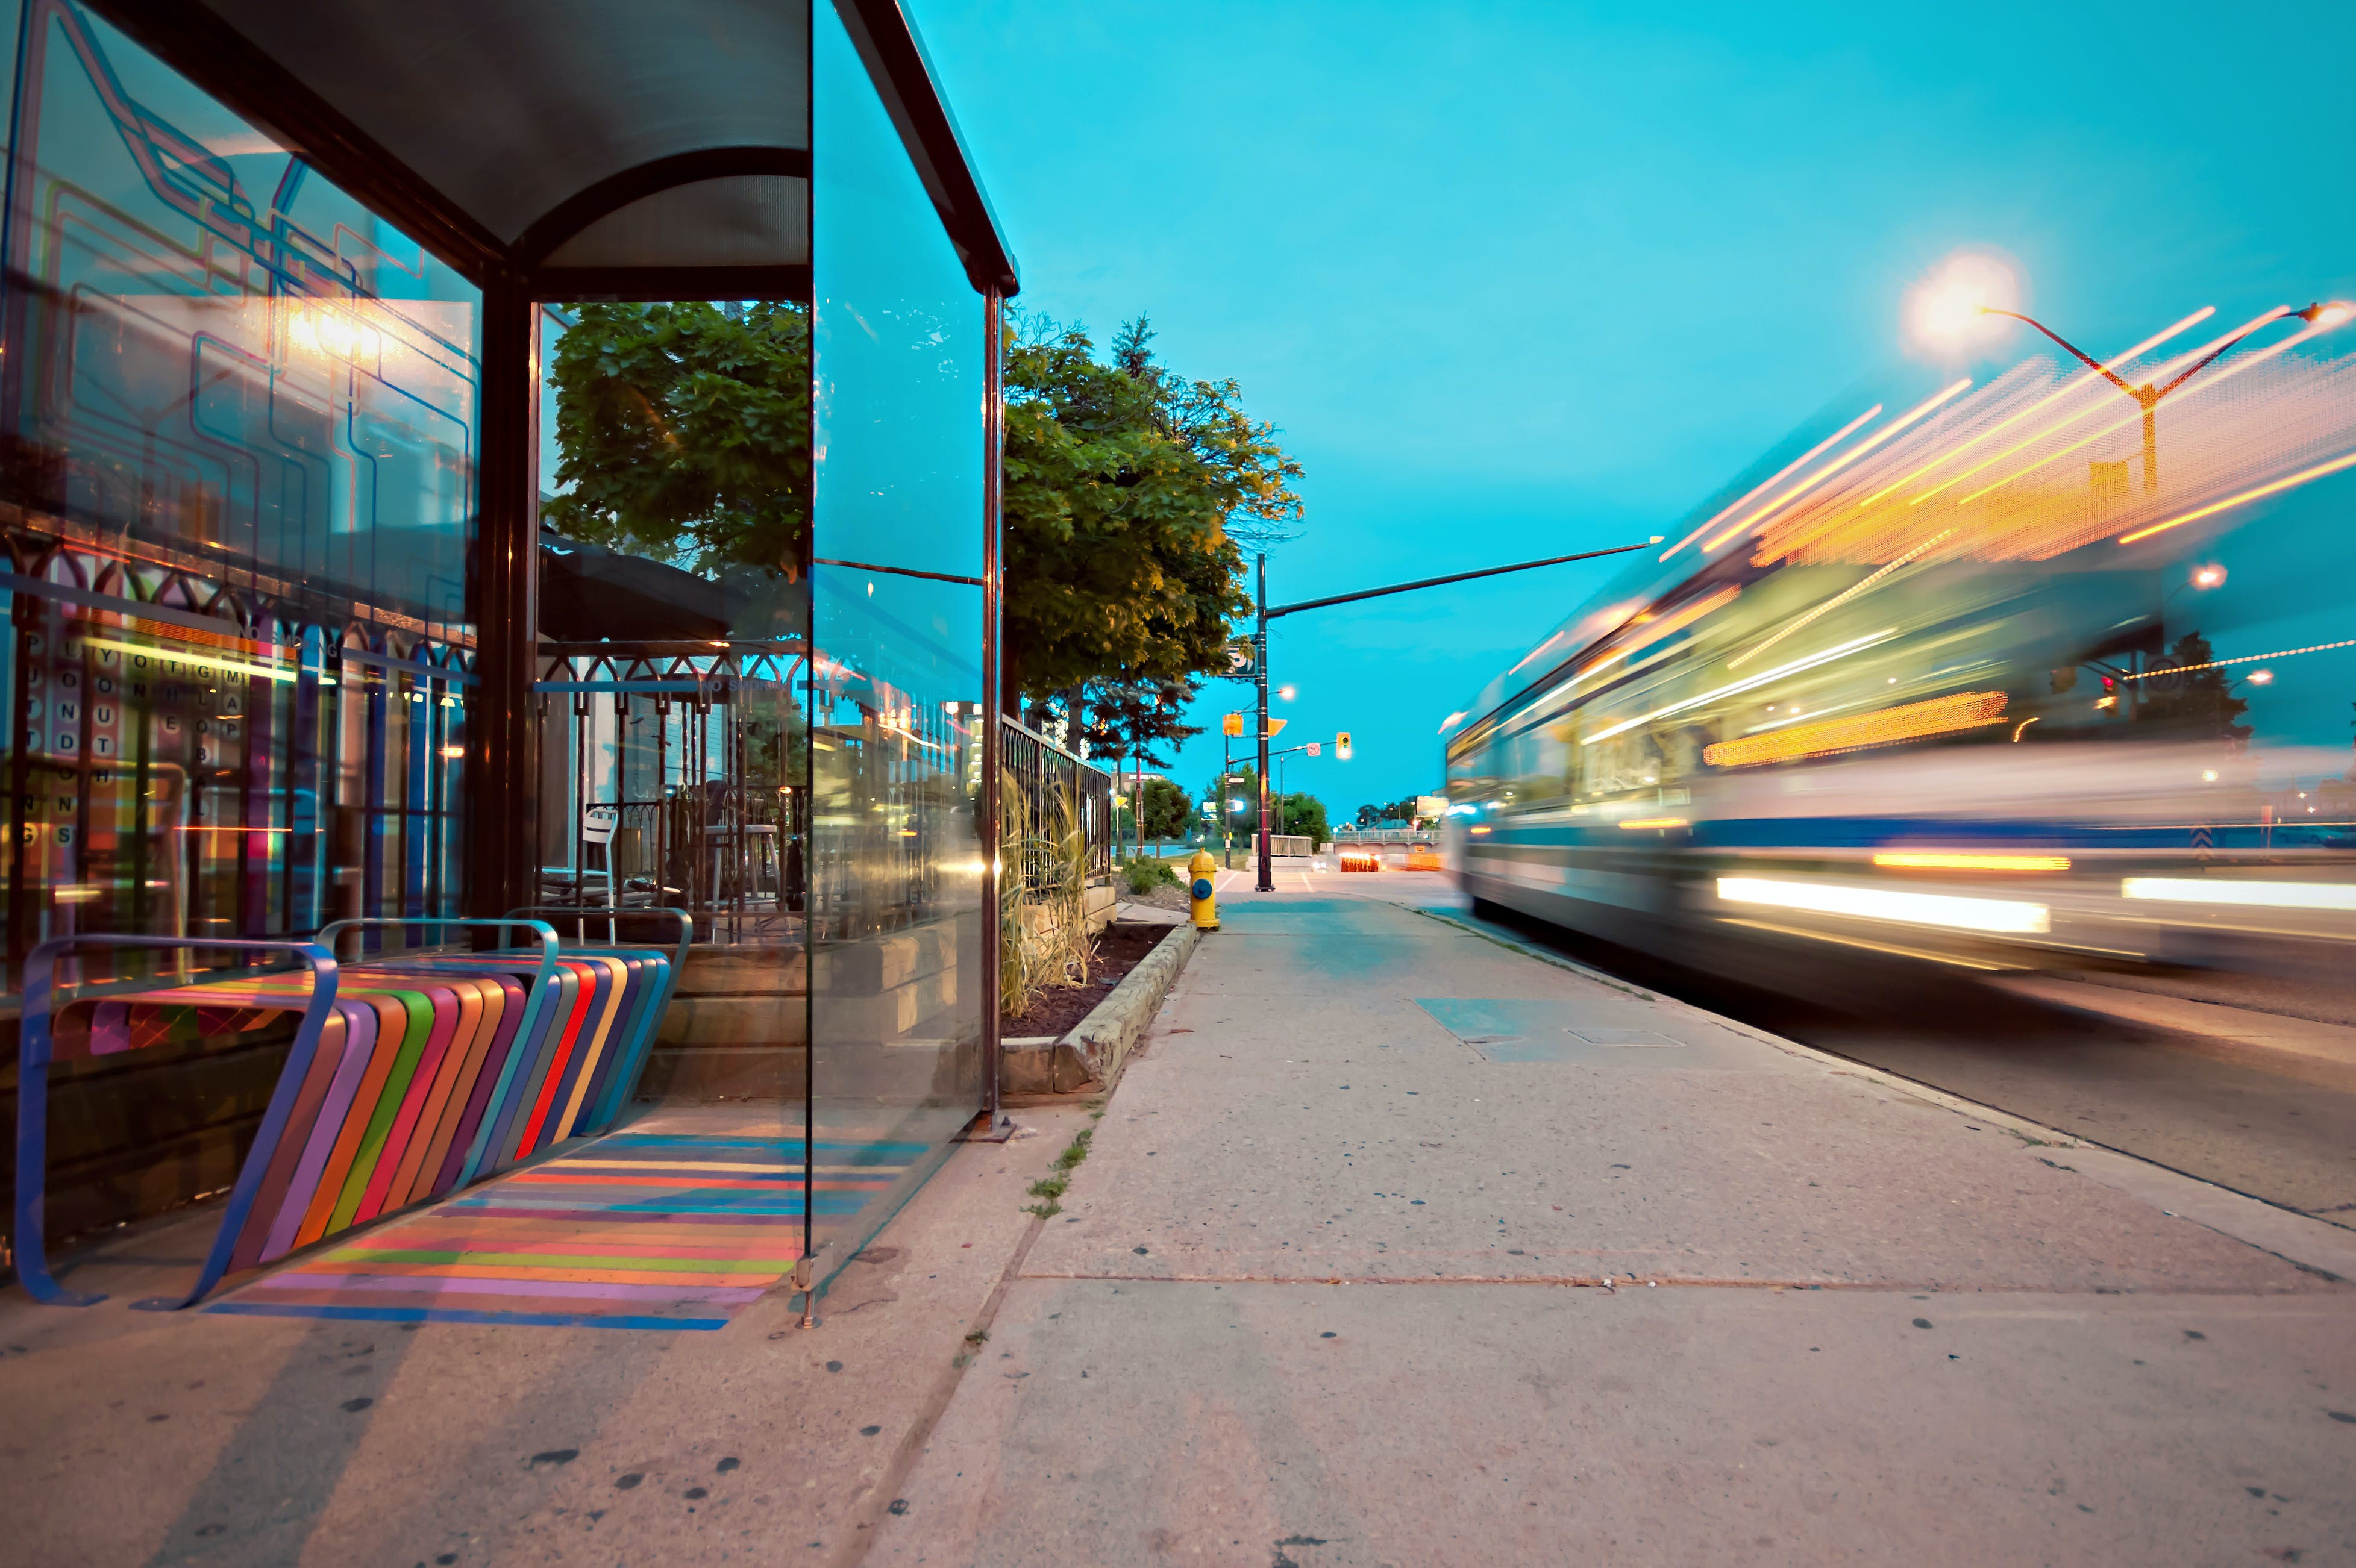 Timelapse Photo of Bus Stop